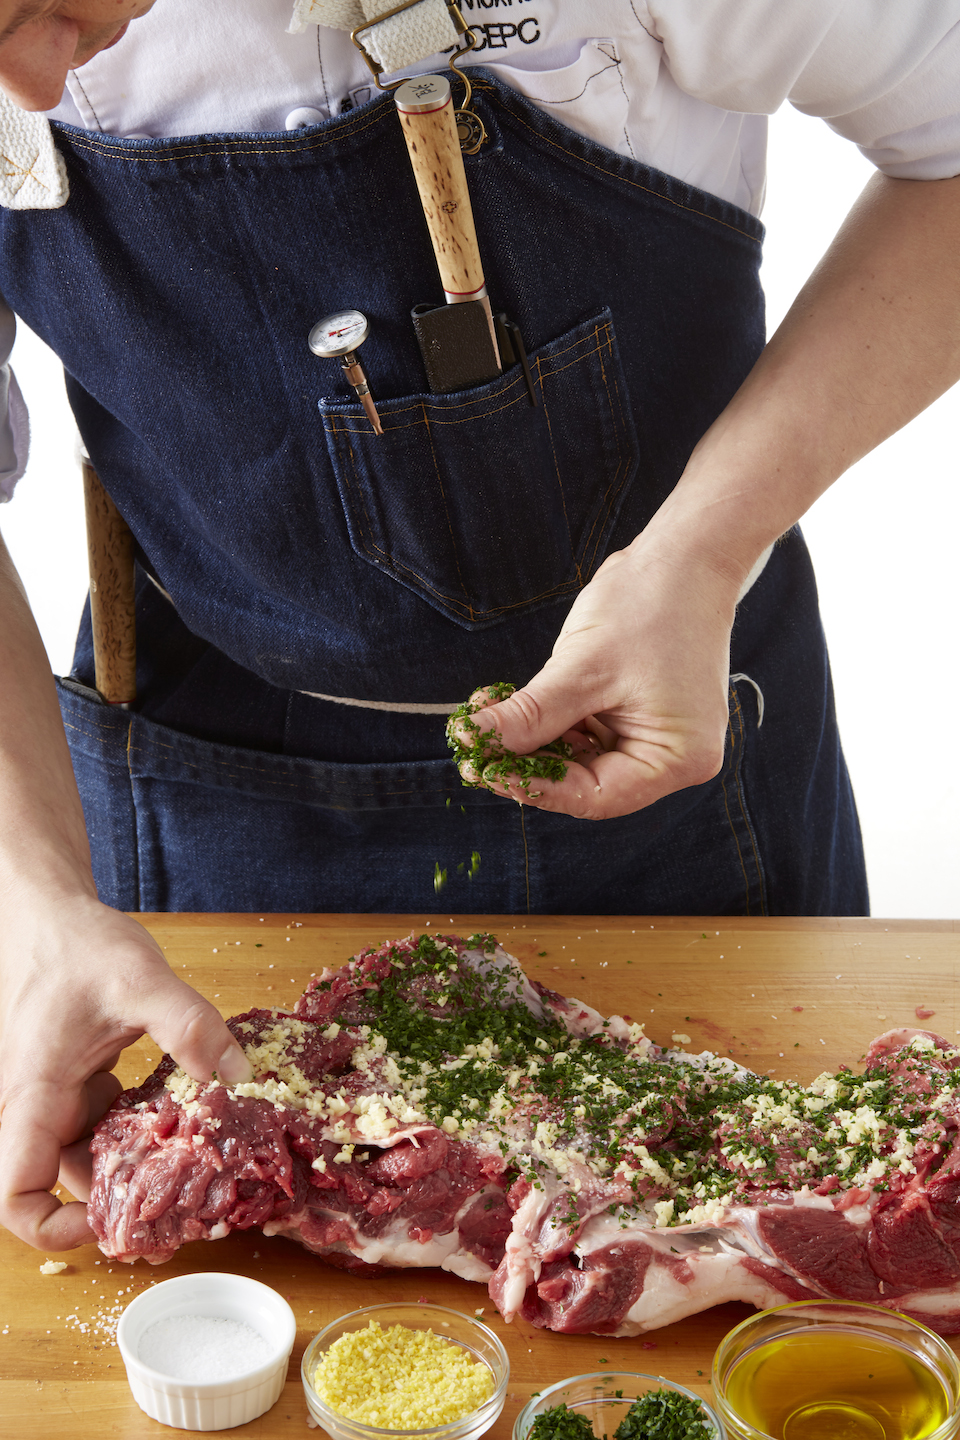 Step Two: Season the lamb with salt and pepper, then spread the lemon-garlic-parsley paste over the seasoned meat.